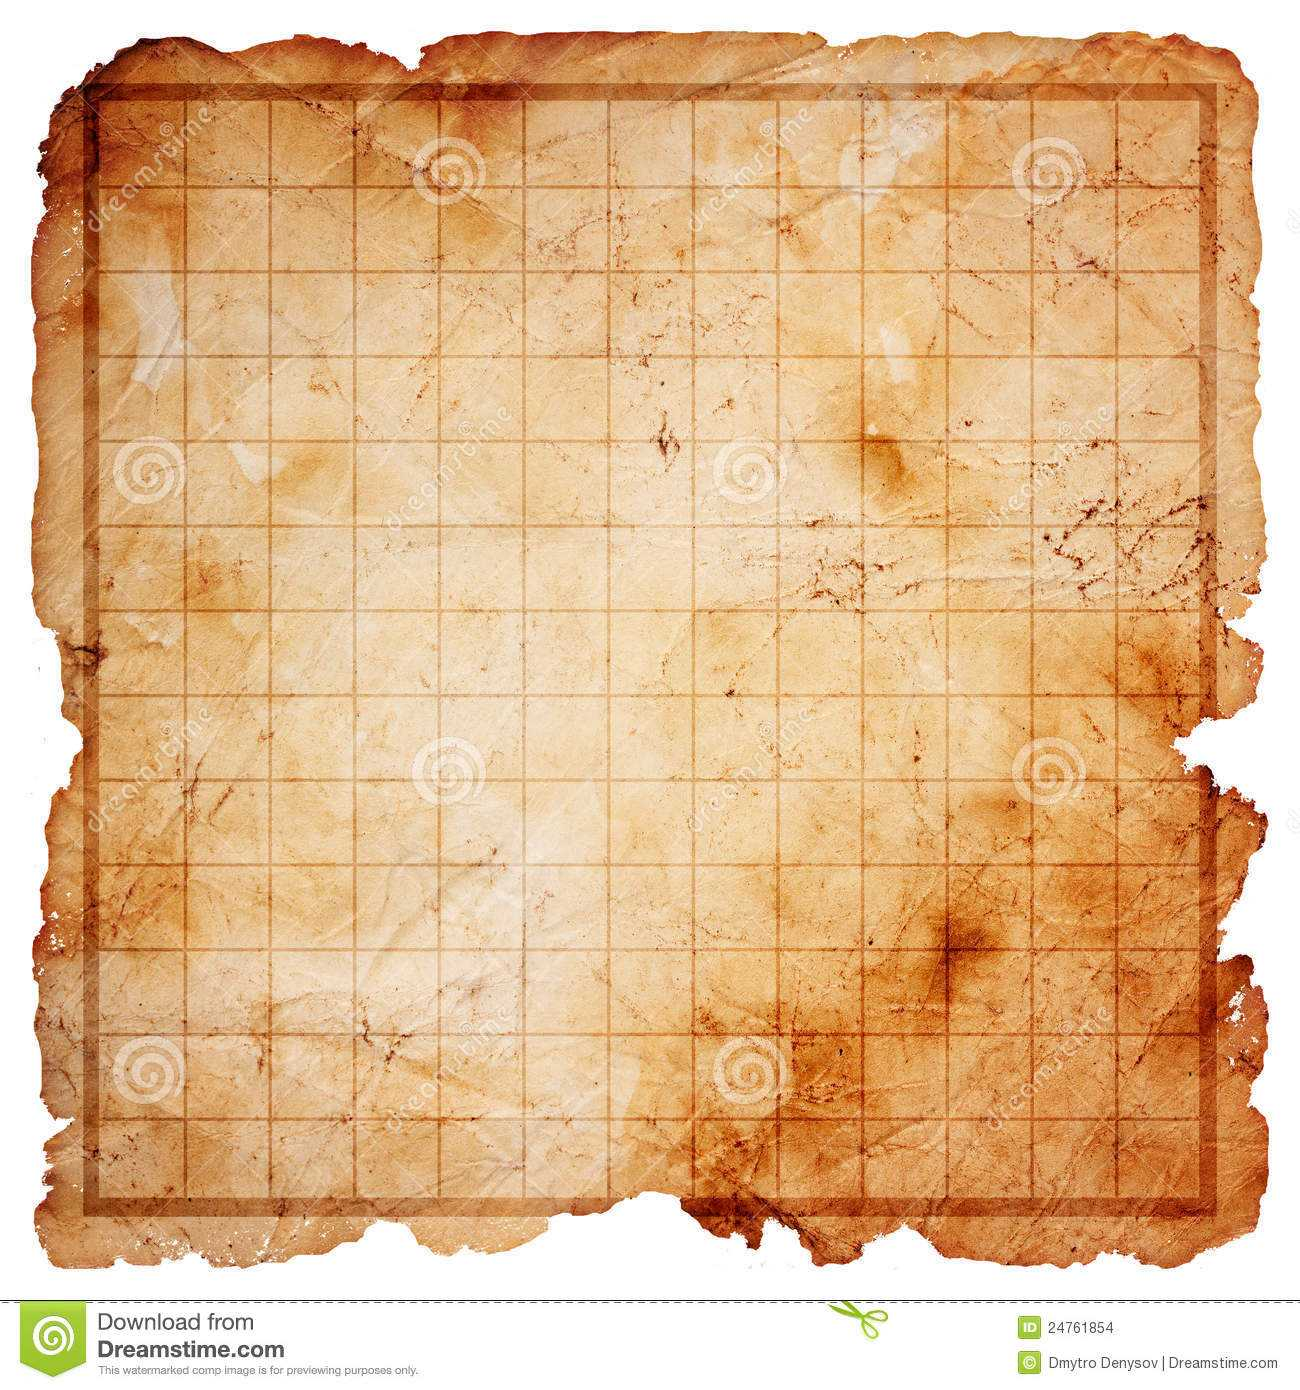 Blank Treasure Map Clipart In Blank Pirate Map Template